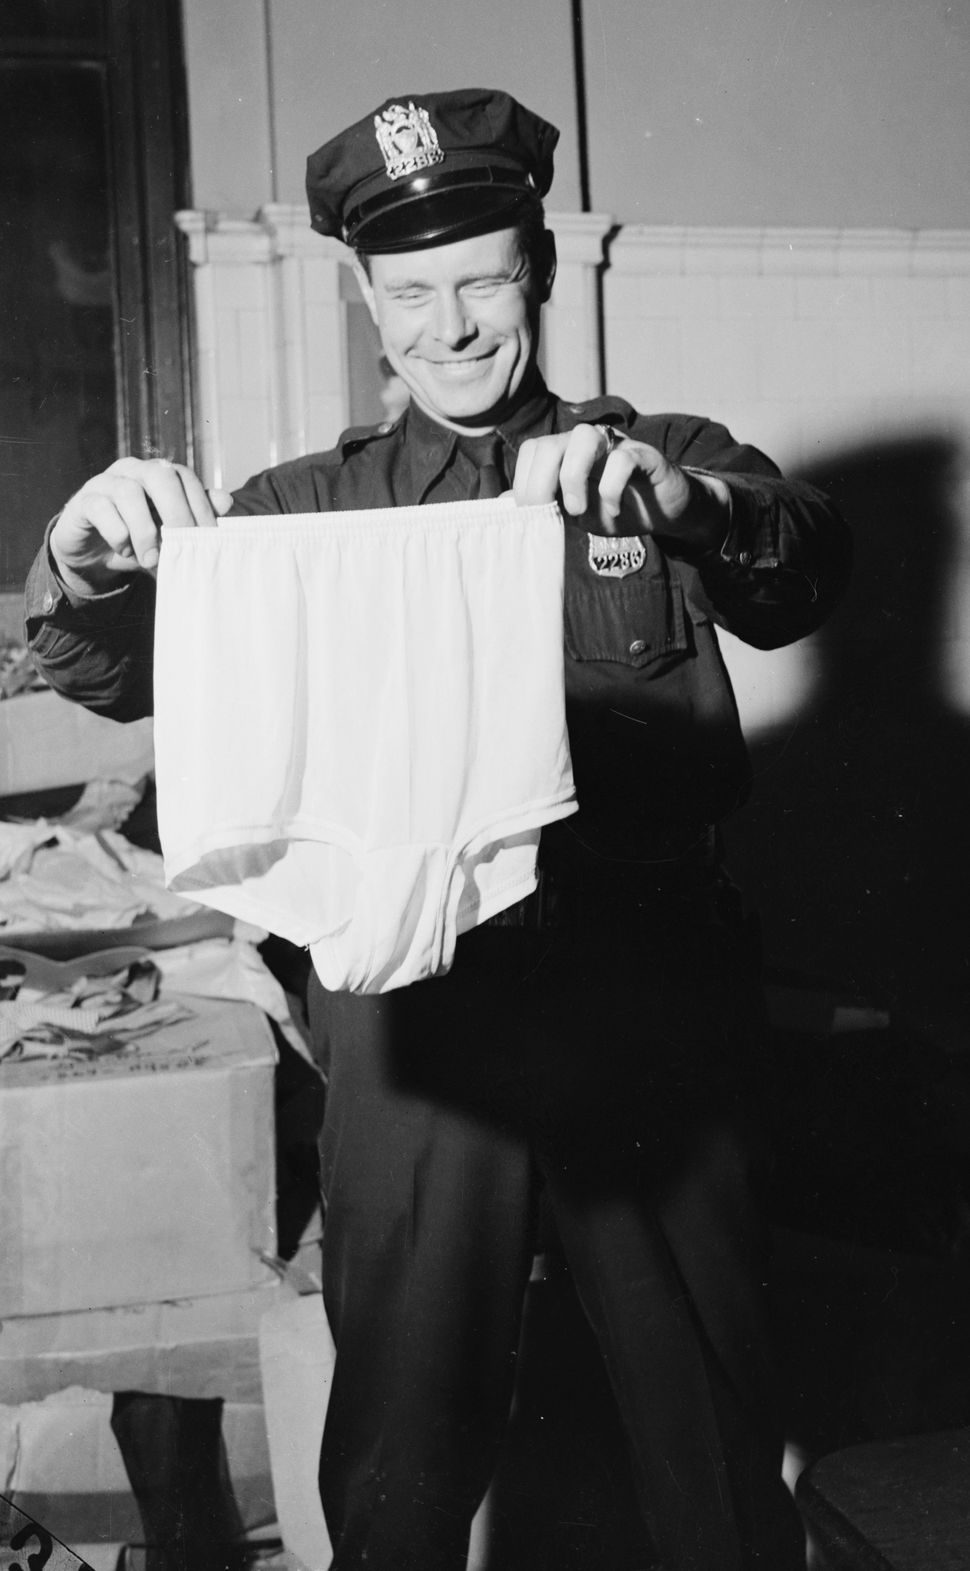 1945: A policeman holds up a large pair of knickers, found amongst some recovered stolen goods in New York.  (Photo by Weegee